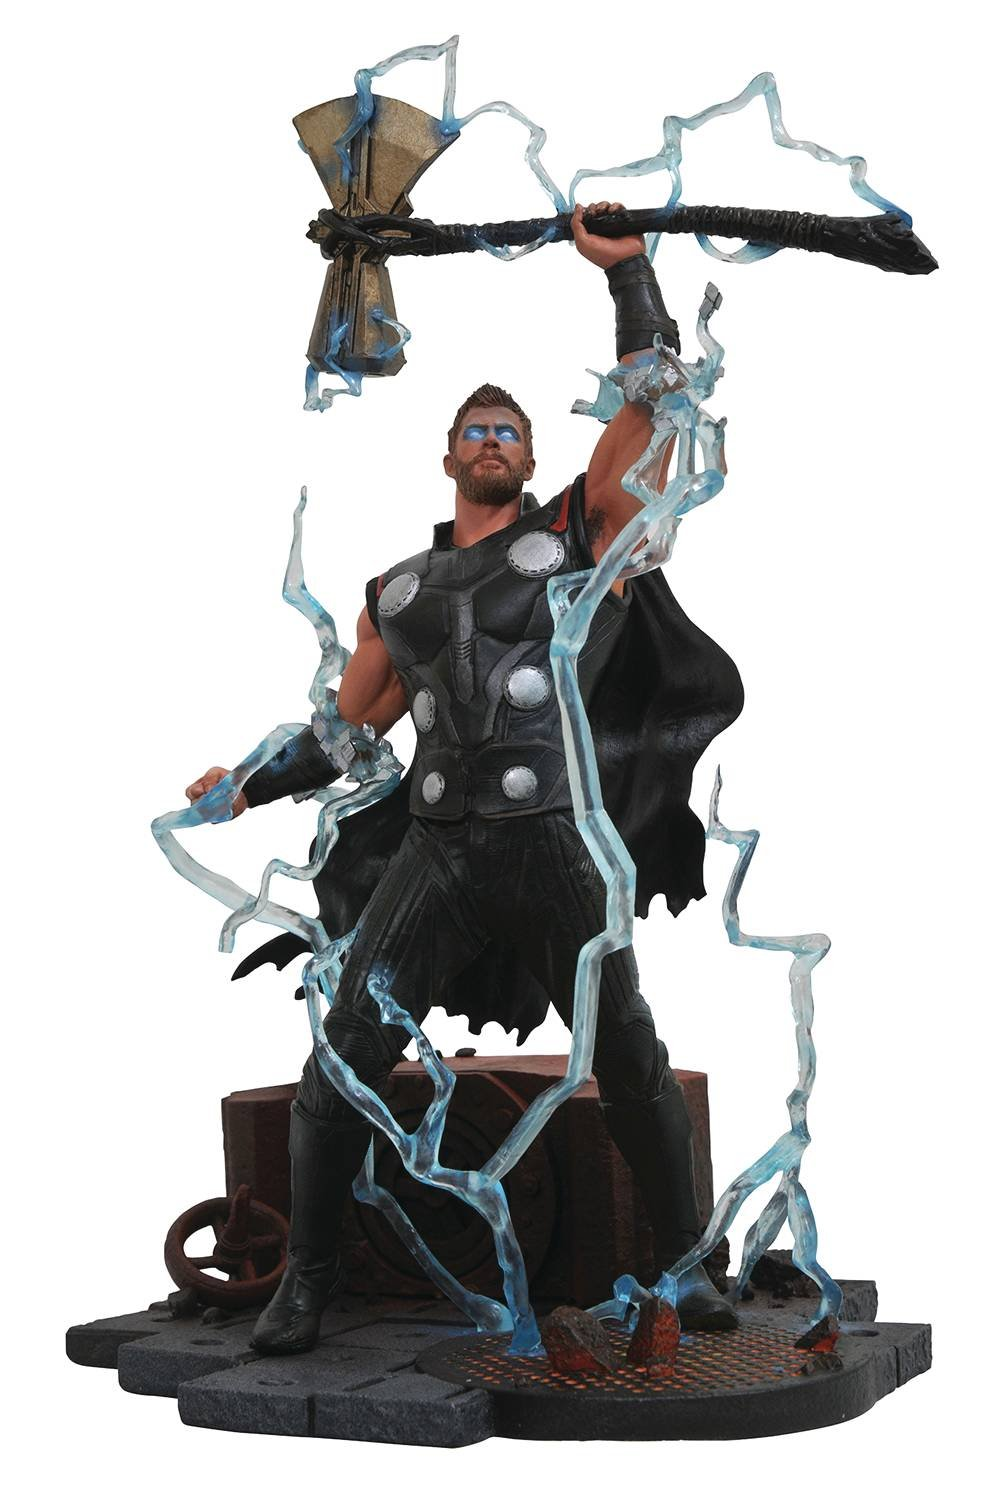 Infinity War Thor Action Figure New Hammer, Avengers, Infinity War, Marvel Universe, MCU, Iron Man, Thor, Thanos, cosplay gear, action figures, Marvel items, Hulk, Spider Man, Captain America, Black Widow, Doctor Strange,